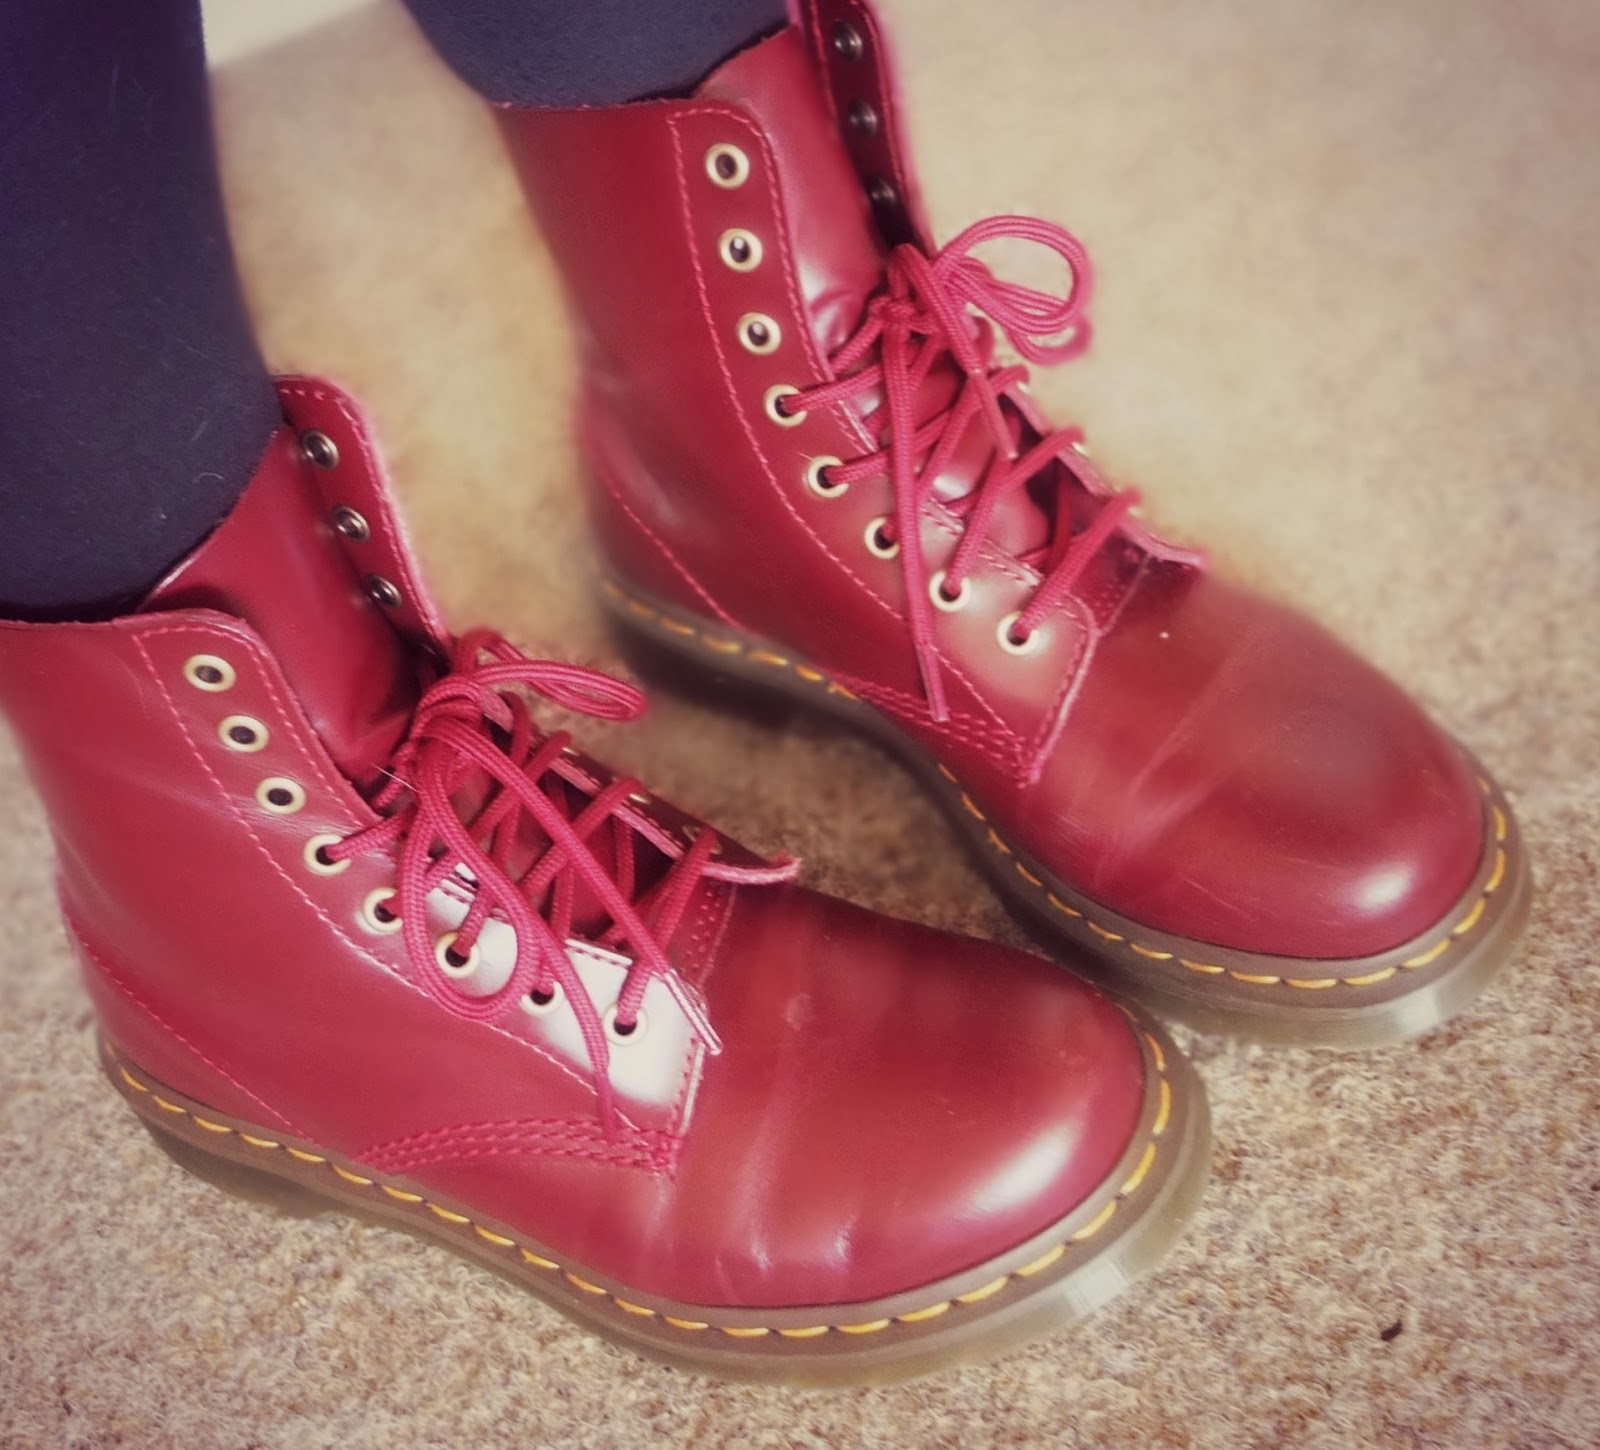 Dr Martin's Cherry Red Boots on Hello Terri Lowe UK Fashion Blog